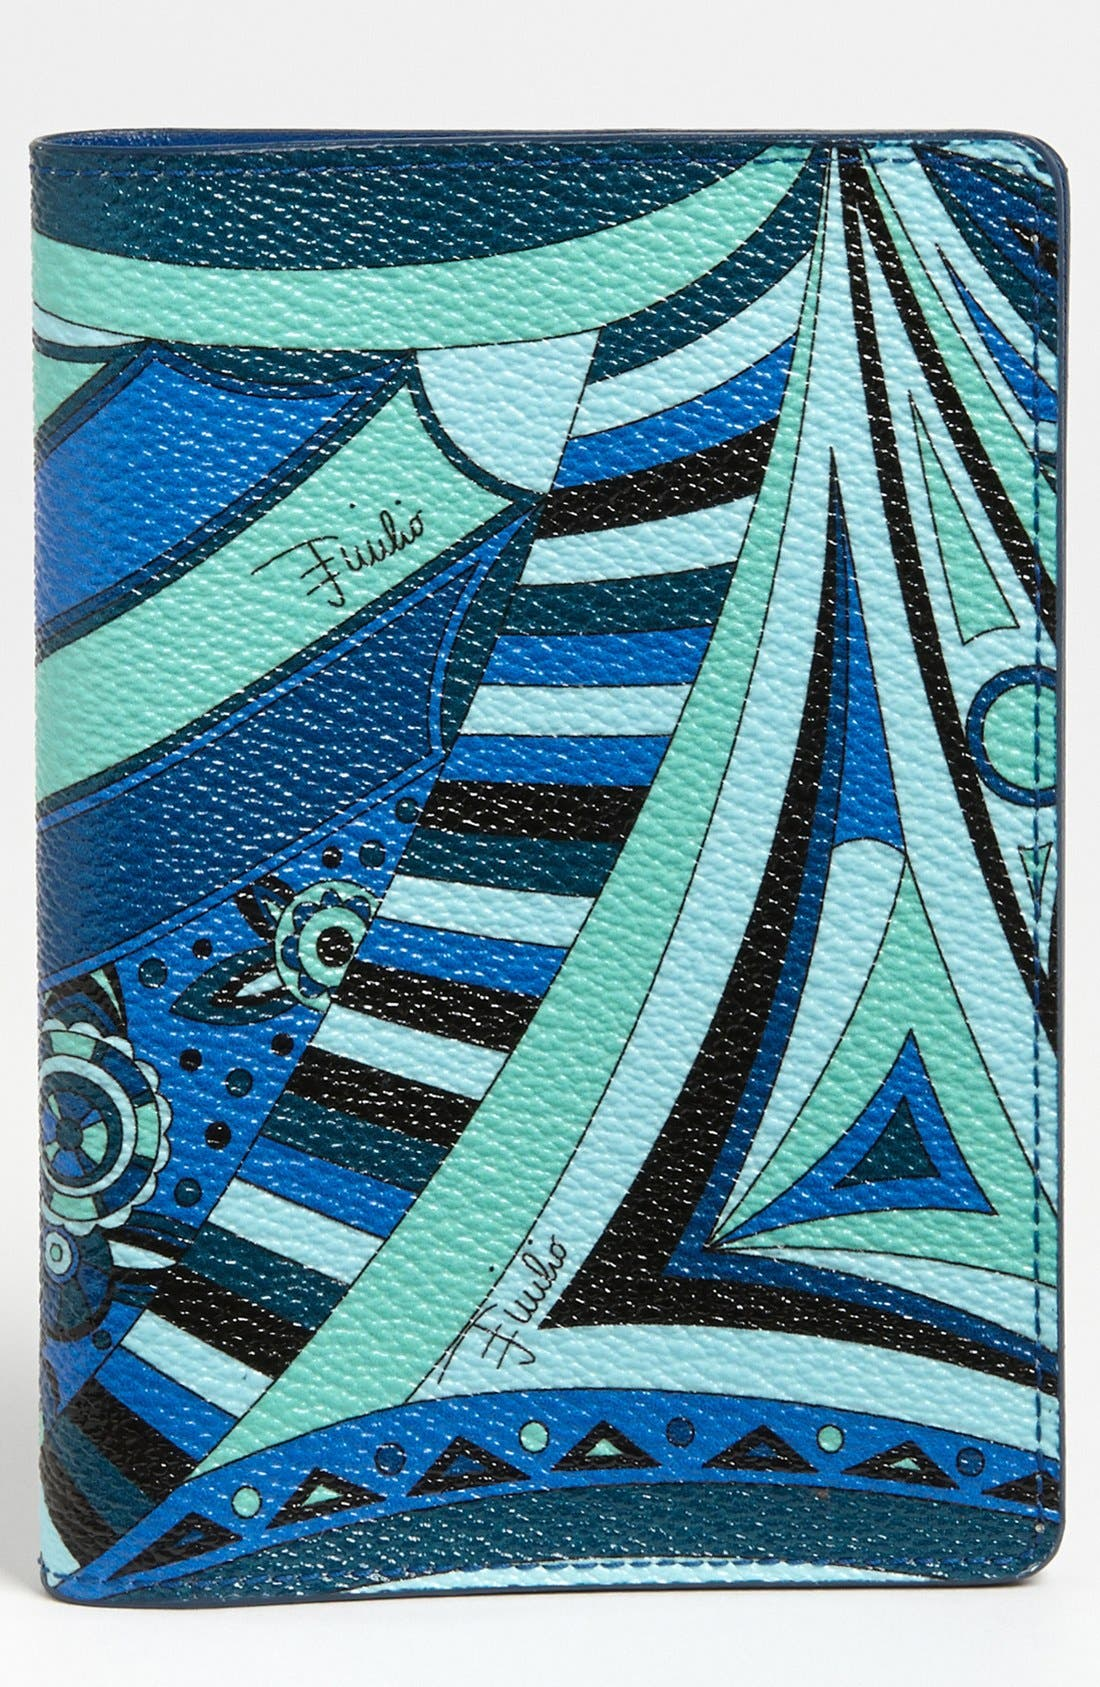 Alternate Image 1 Selected - Emilio Pucci 'Baby Chicago' Passport Cover